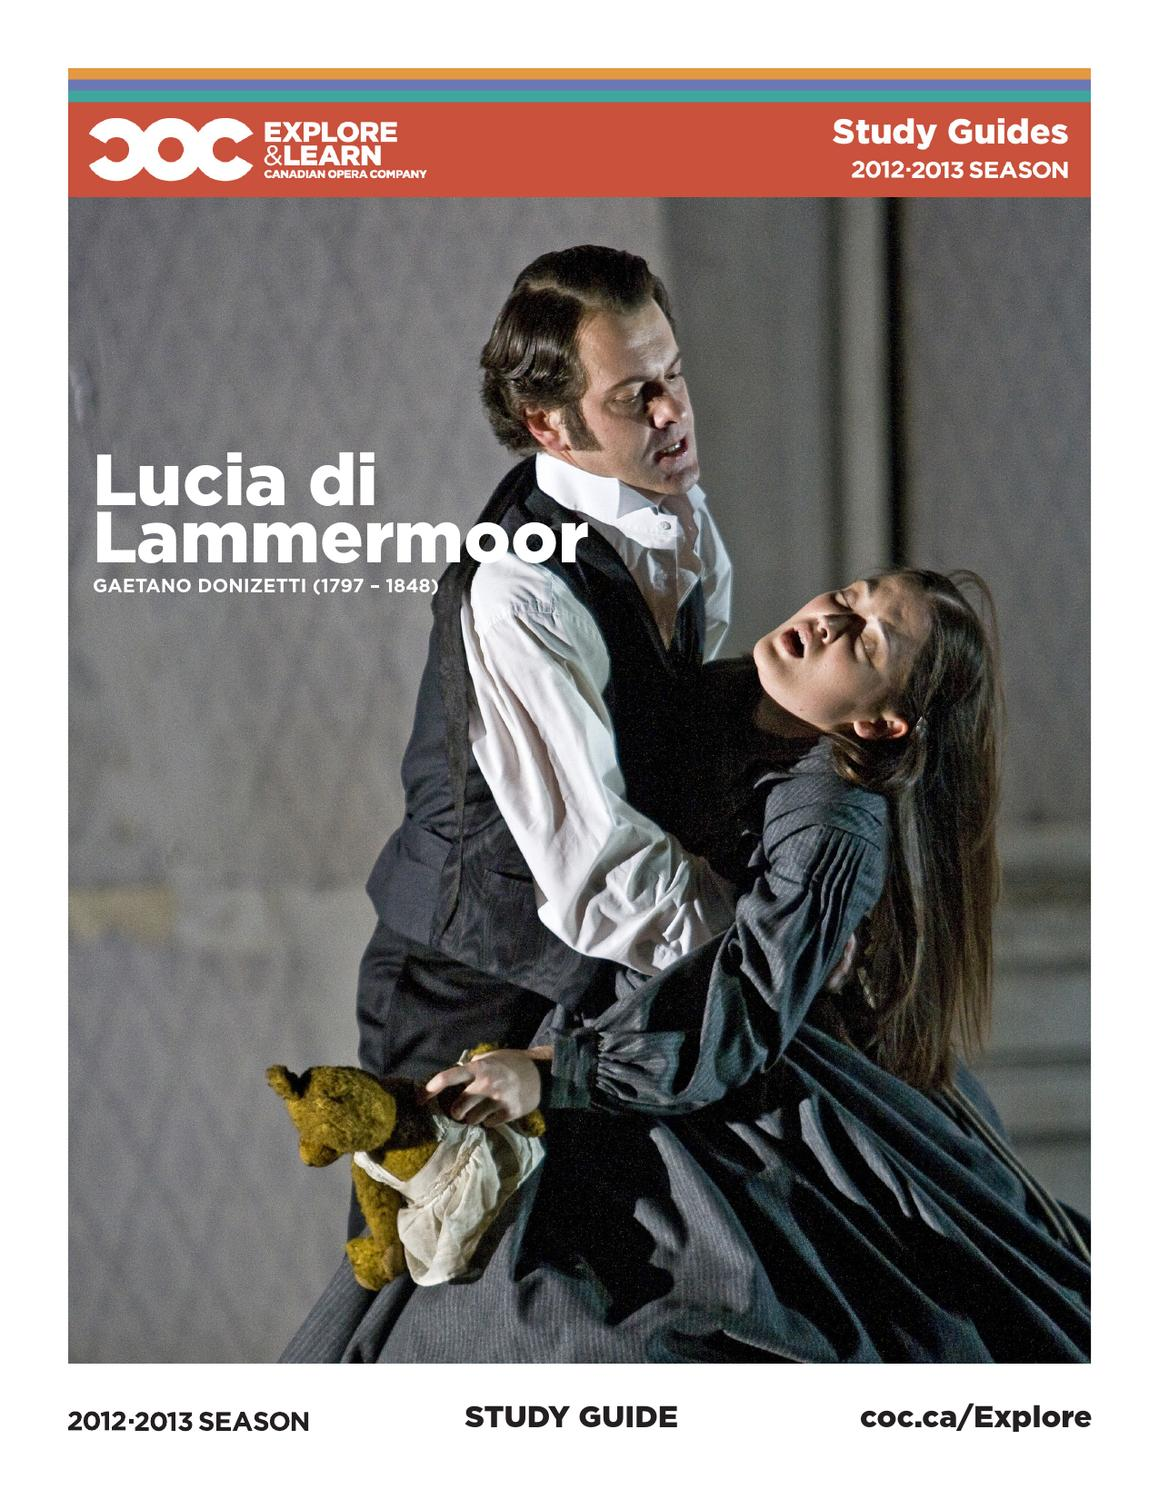 The Bride of Lammermoor, by Sir Walter Scott